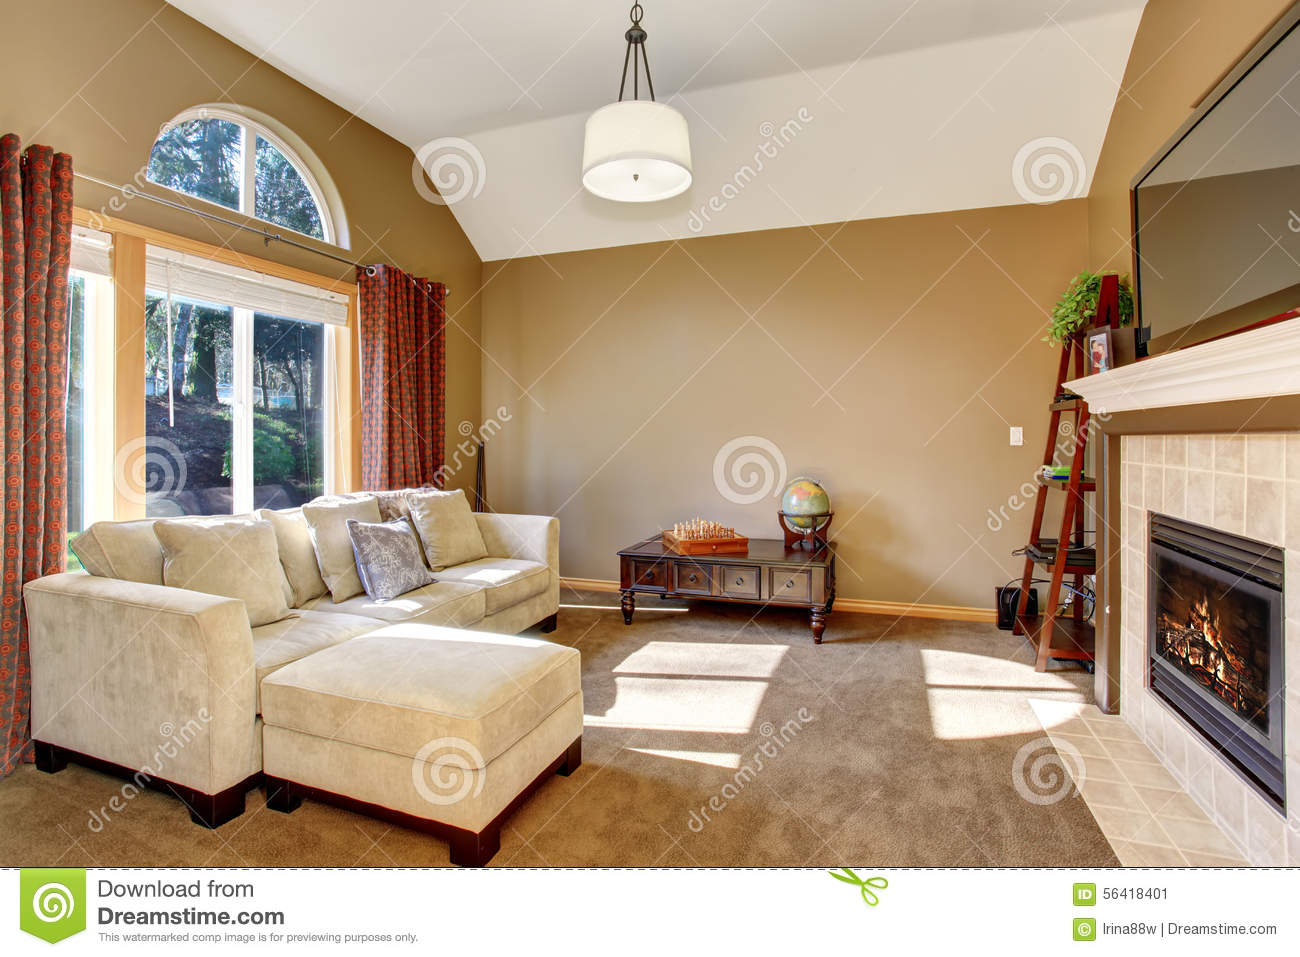 Perfect family living room with carpet and hanging light fixture